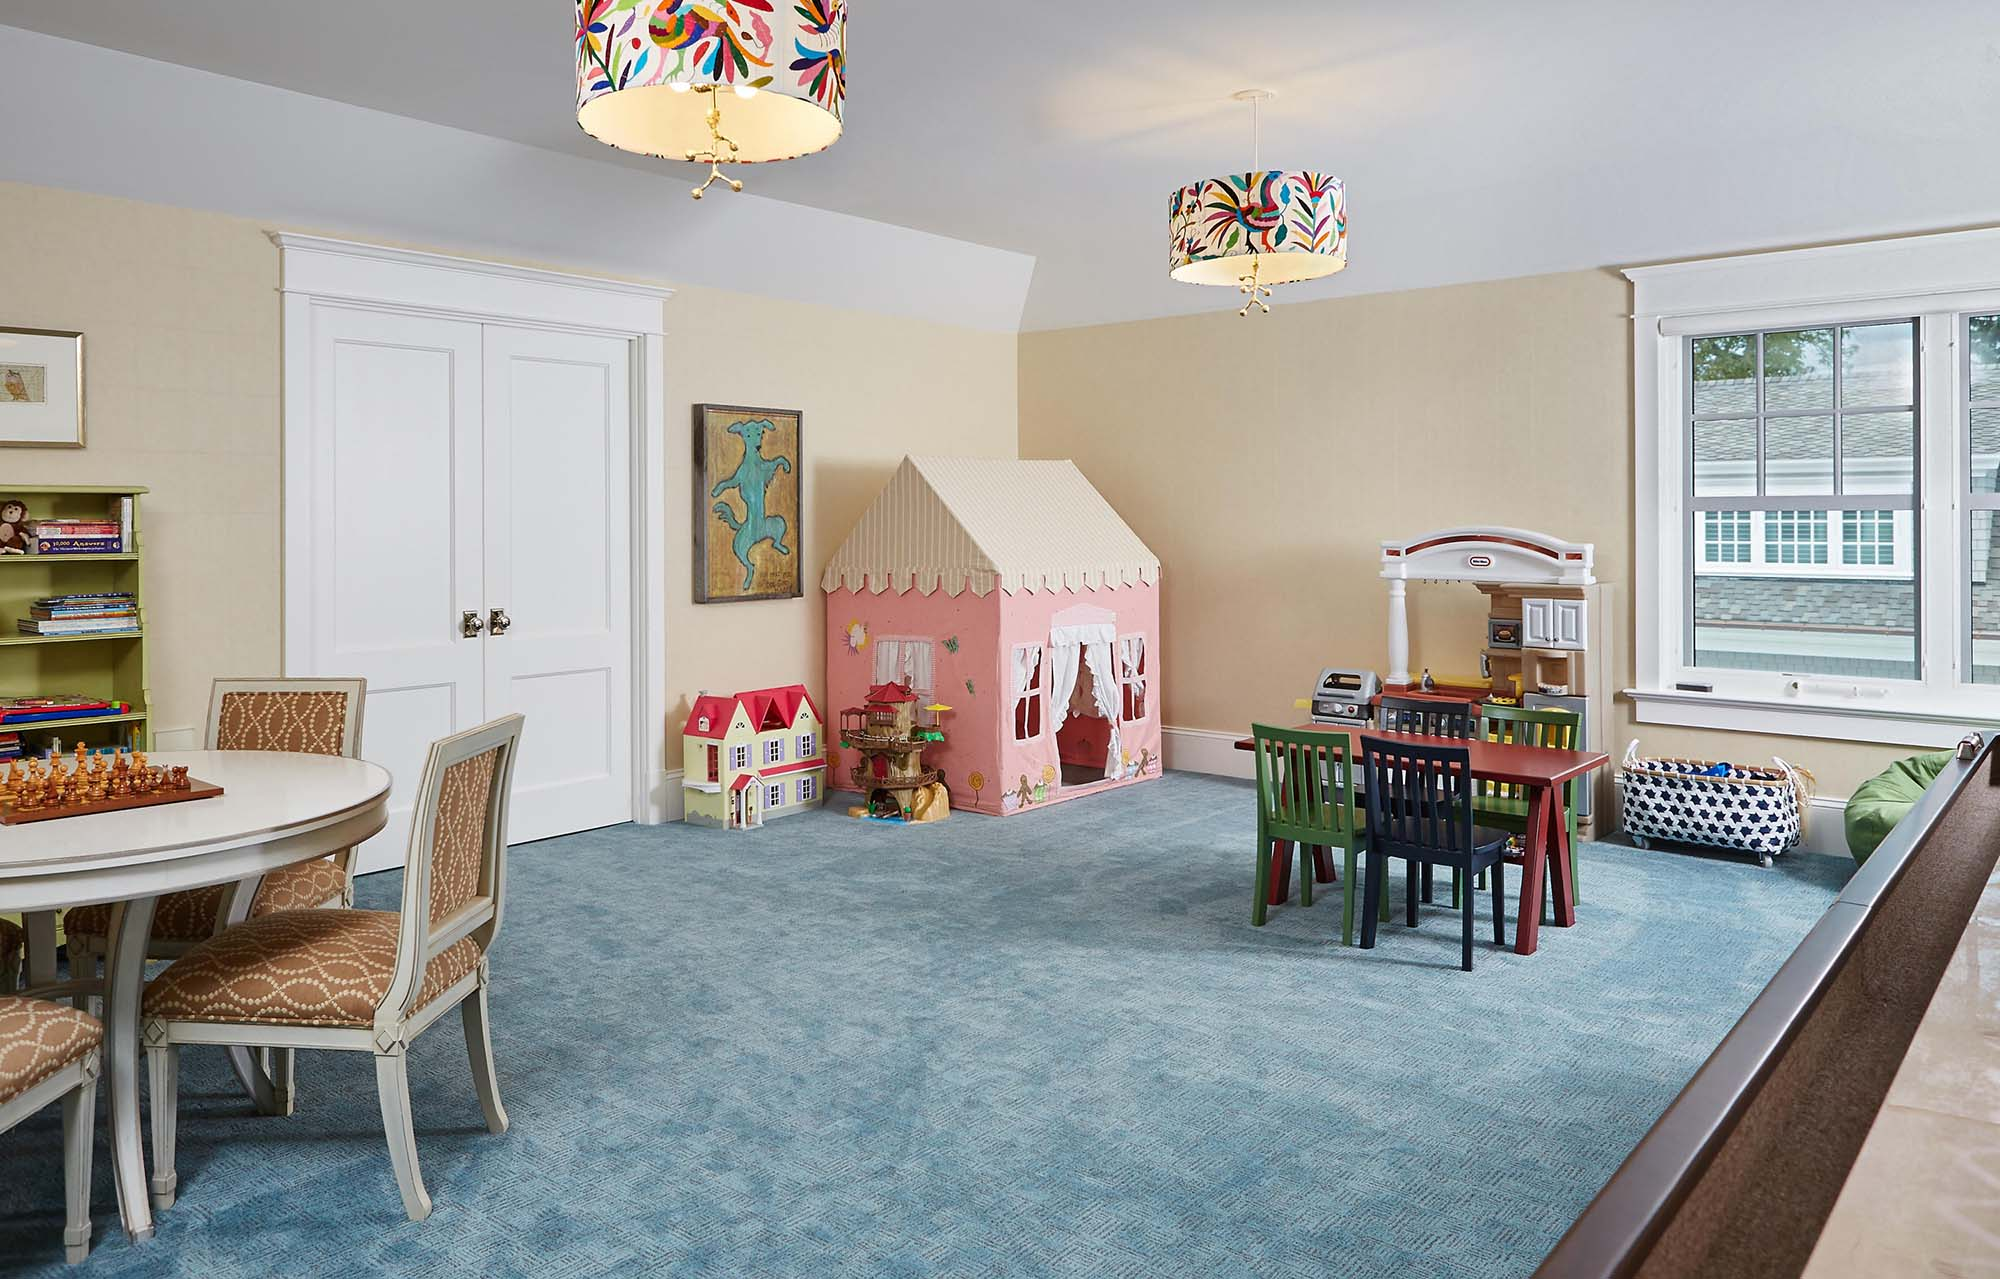 childrens play room tan walls white ceiling and blue carpeting custom craftsmen trim work